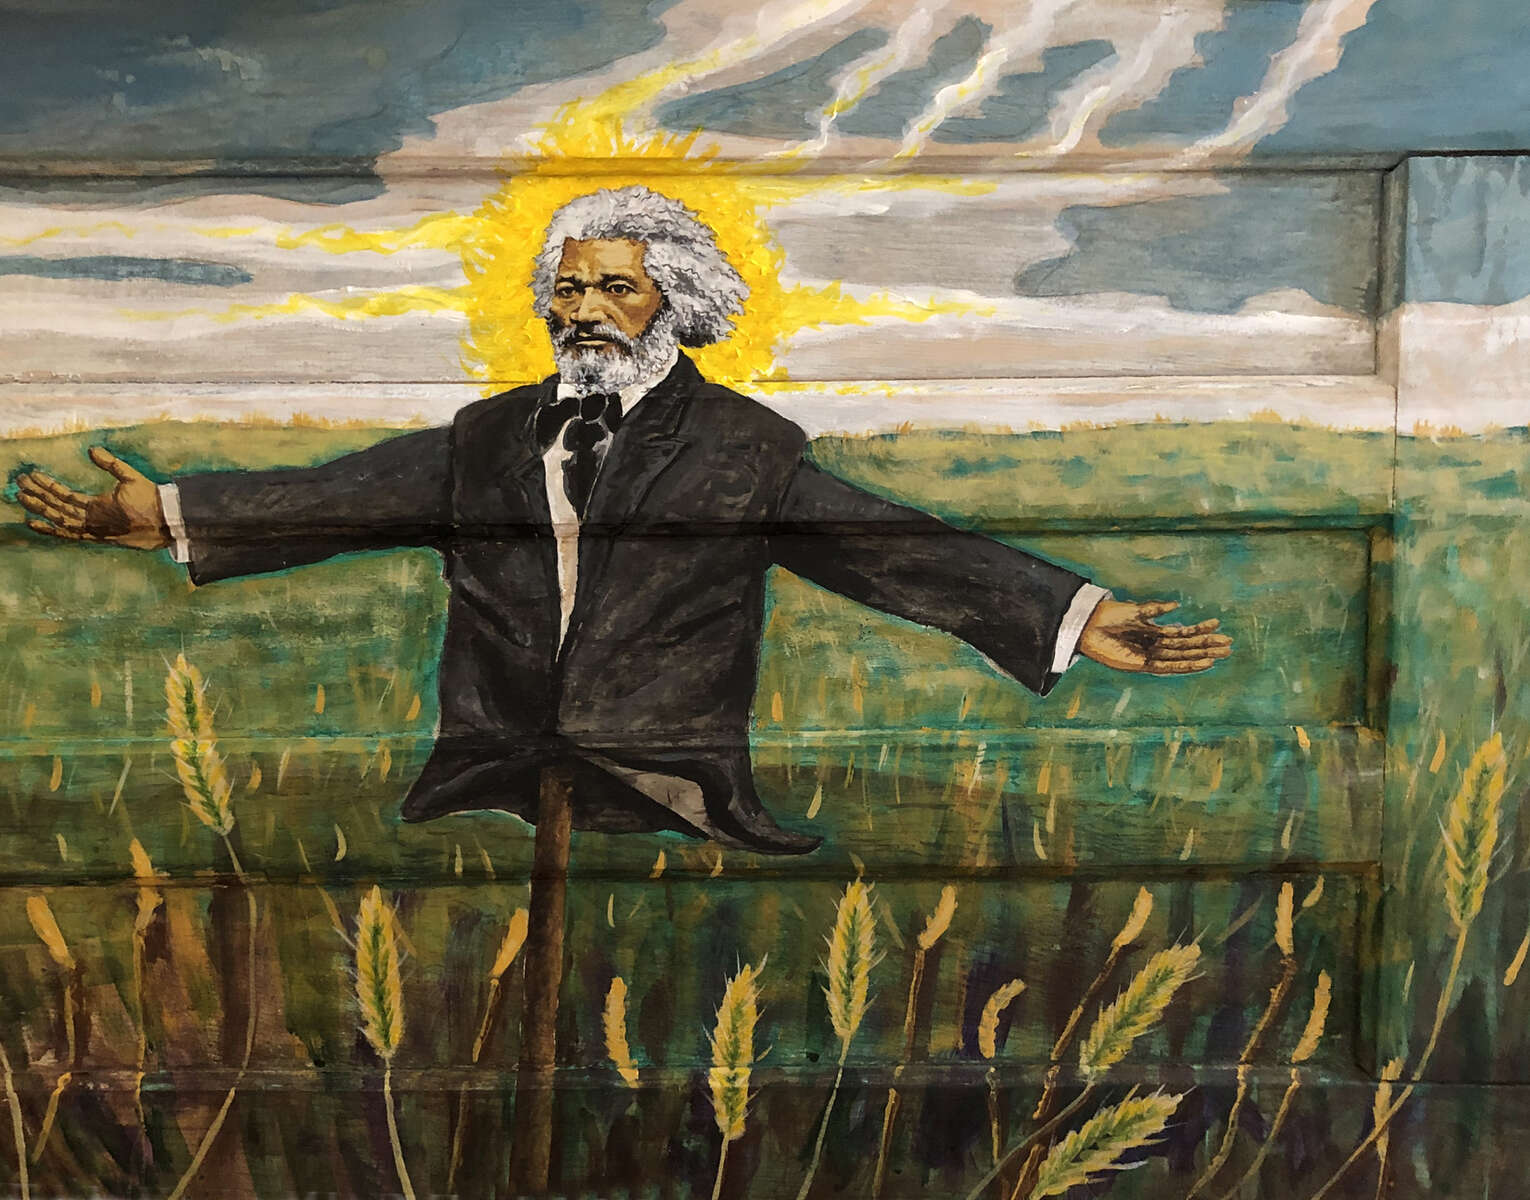 Scarecrows originated in Africa to watch over crops and were symbolic guardians of future generations. Today scarecrows are thought of as totems of death and fear and this speaks of the horrors inflicted upon people of color, but simultaneously represent hope and prosperity. Too many of these living sentinels throughout history have been dismissed and abandoned in a field to wither. This painting was inspired by Frederick Douglass' {quote}What to the Slave is the Fourth of July?{quote}